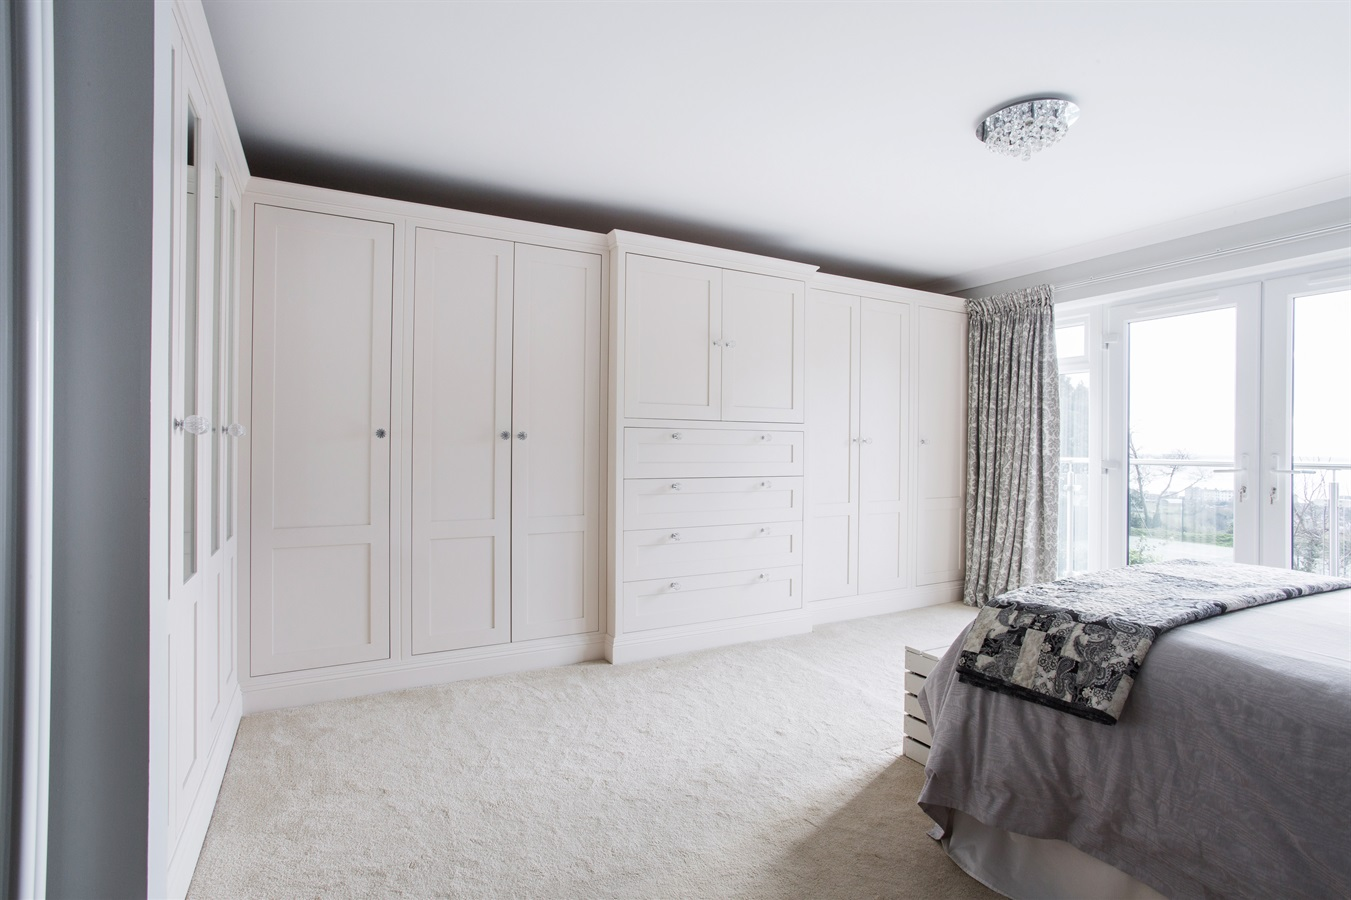 Burlanes Bespoke Bedroom Furniture & En-suite - Burlanes were commissioned to design and handmake beautiful fitted bedroom furniture and wardrobes, with lots of storage space.